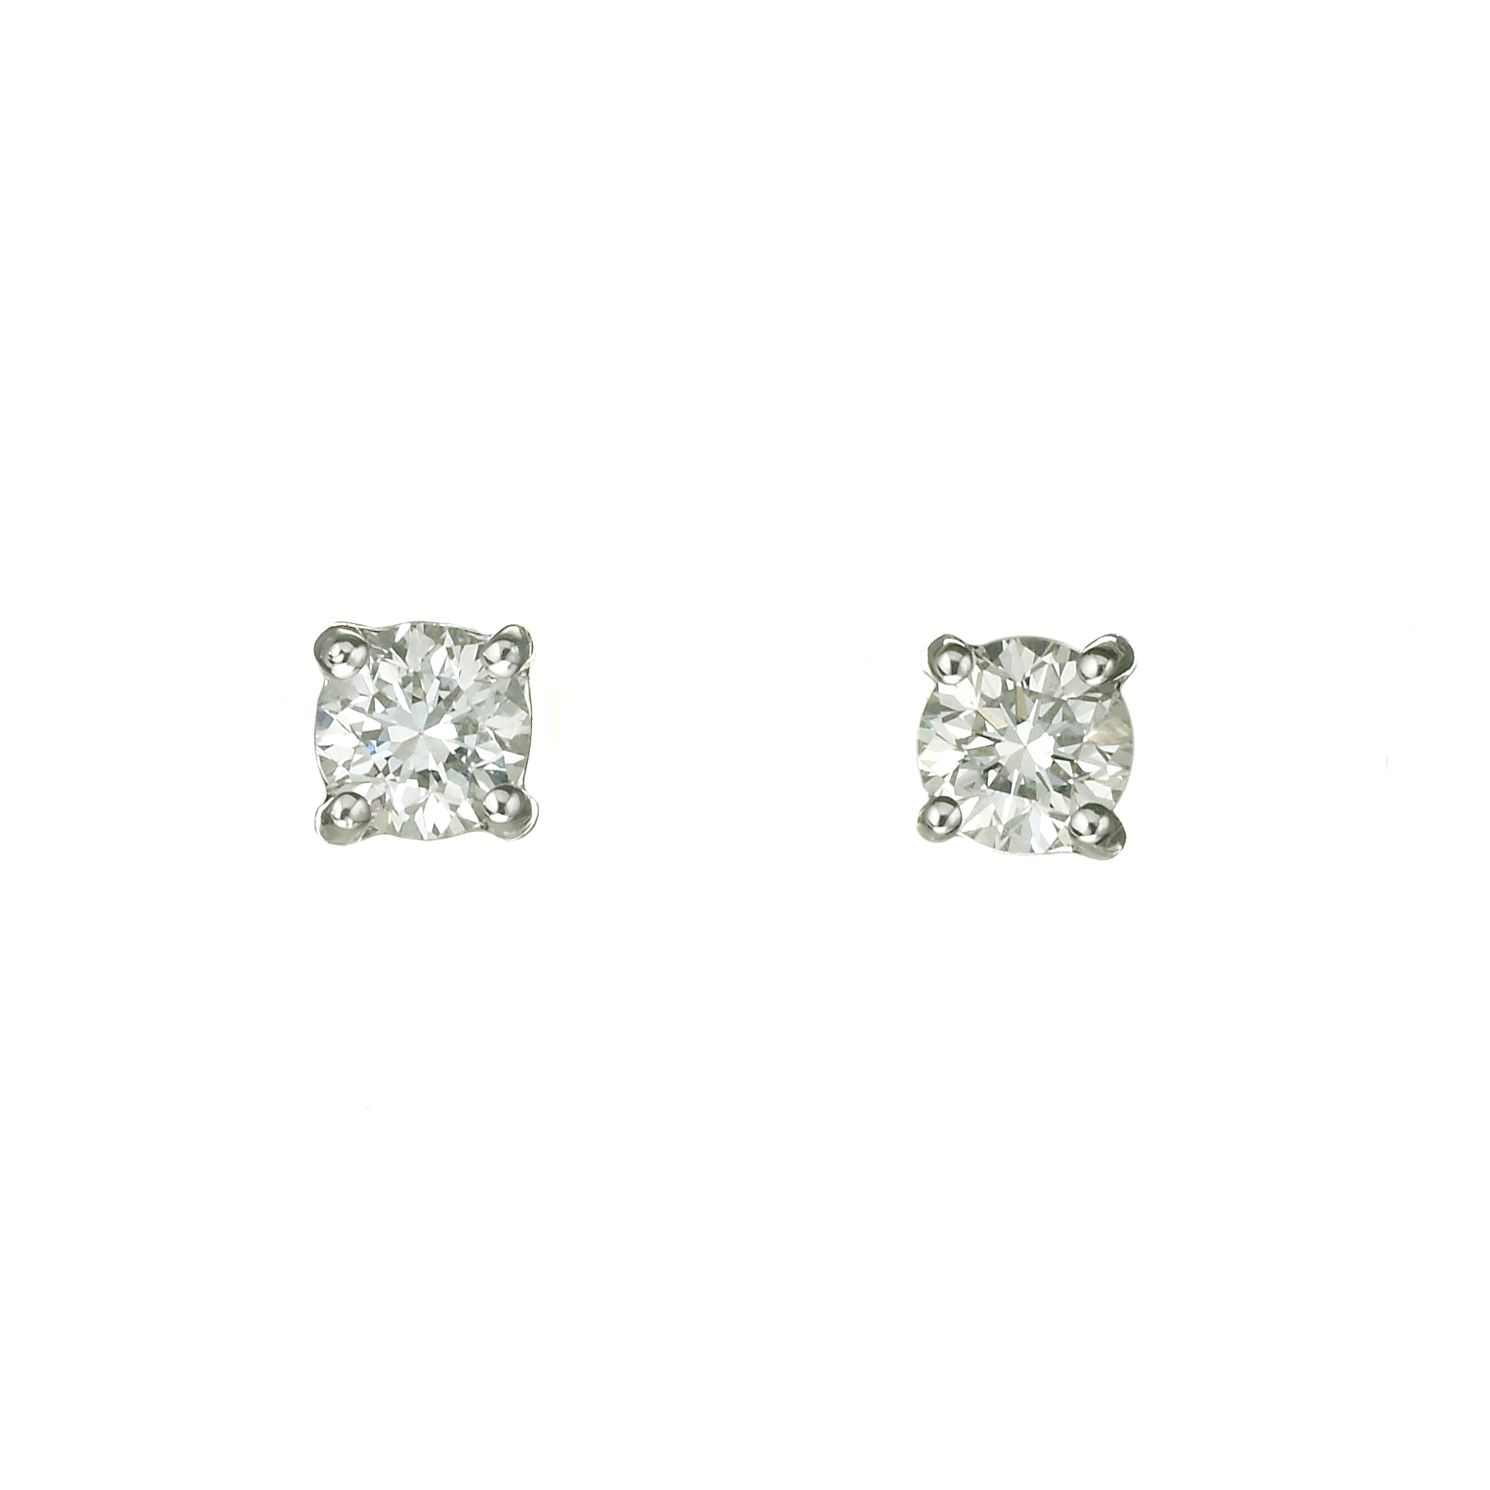 18ct White Gold 2/5ct Diamond Solitaire Stud Earrings - Product number 5972612